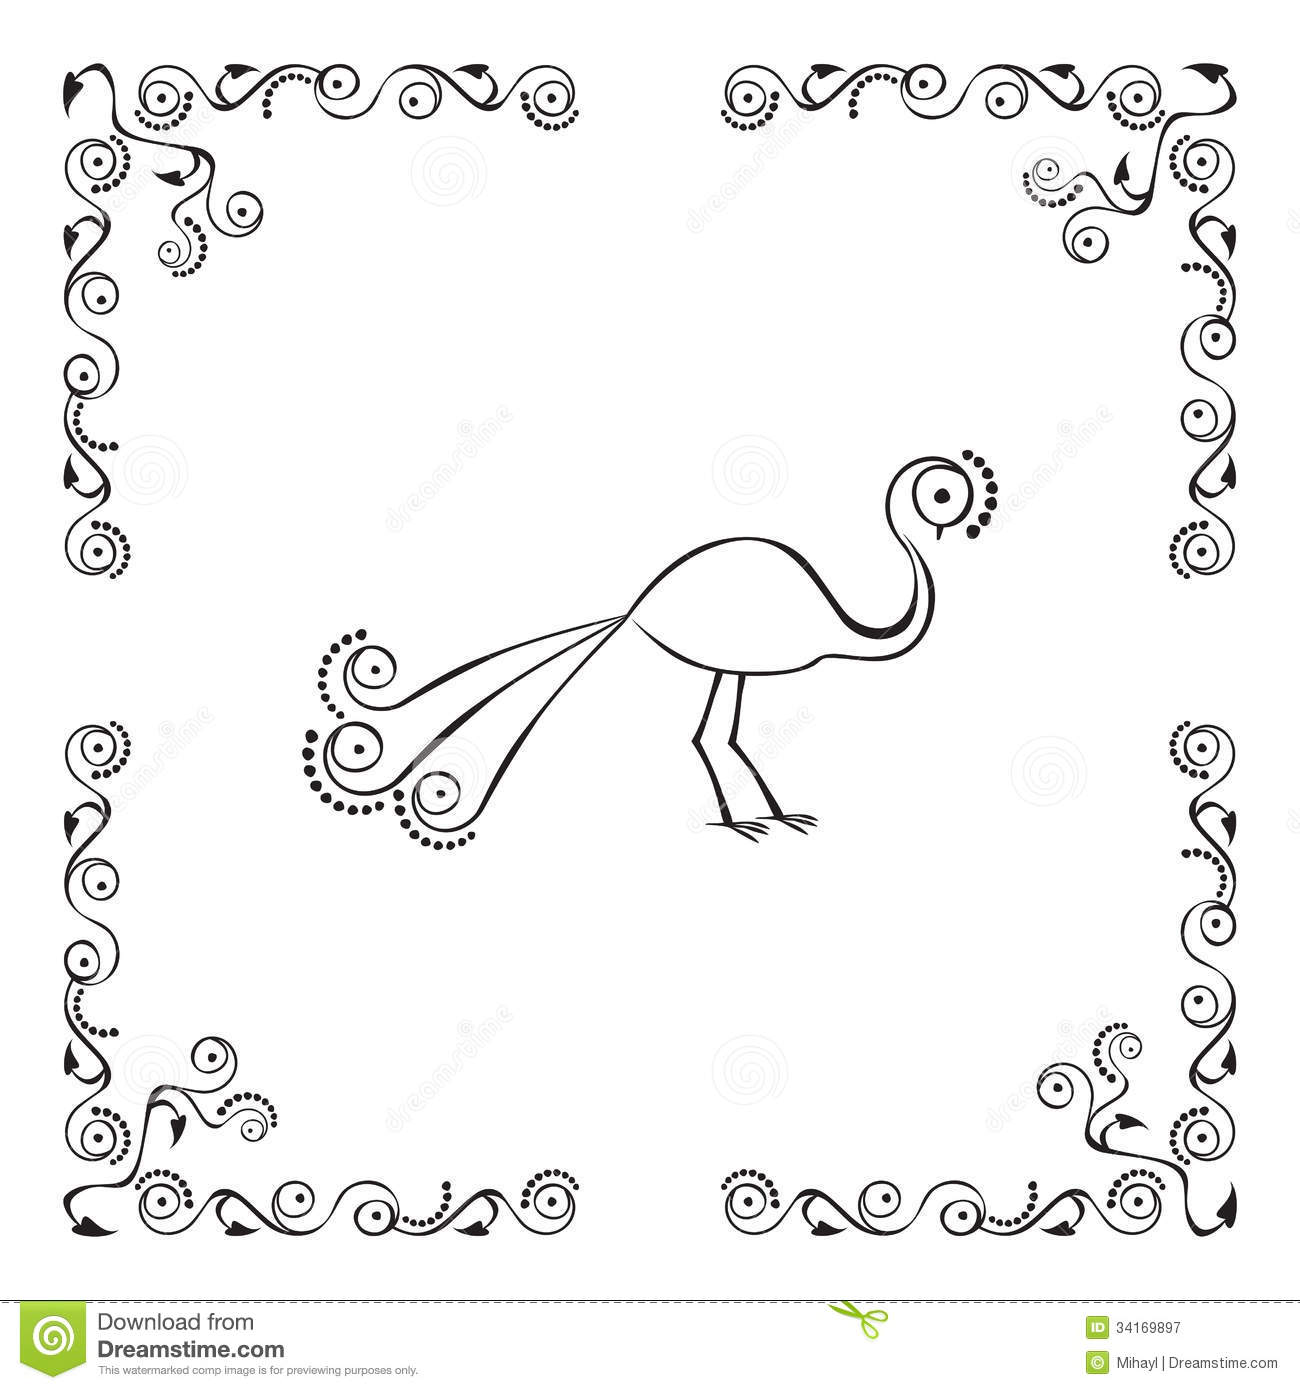 Peacock In Border Stock Vector Illustration Of Element